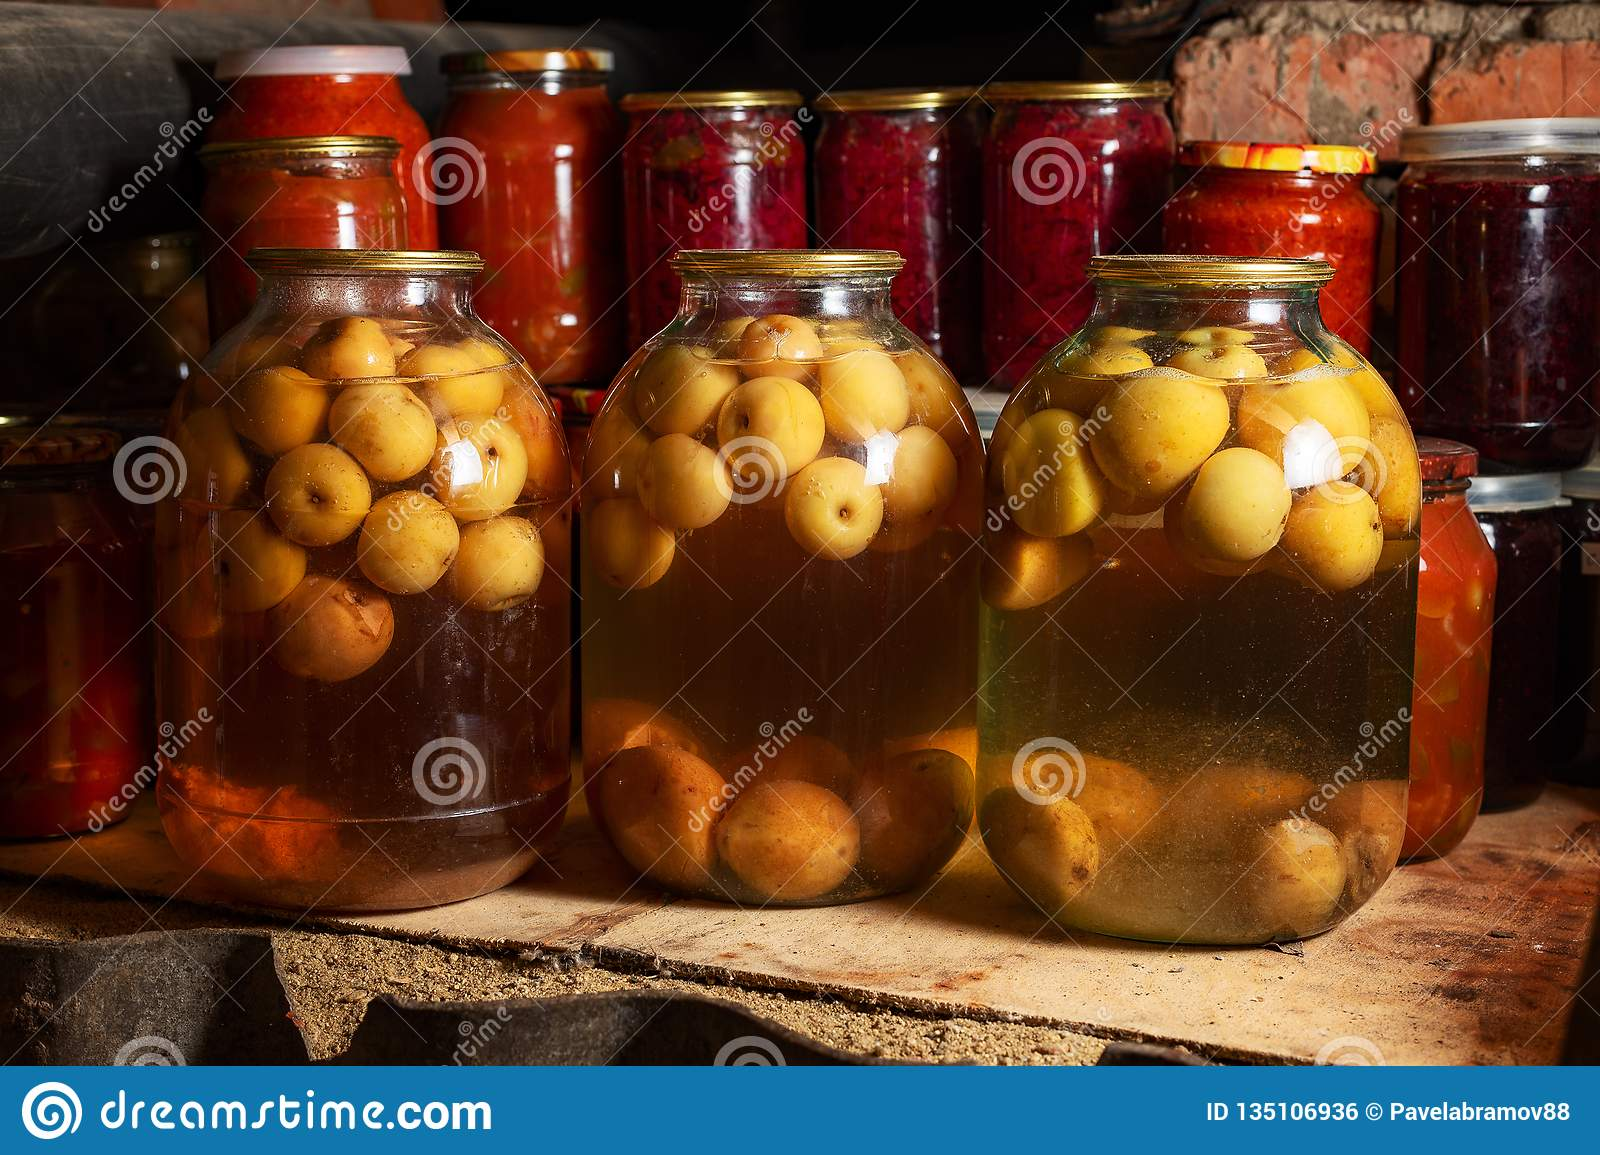 Canned vegetables in transparent glass jar. Apple compote in large transparent jars. Homemade canned juice